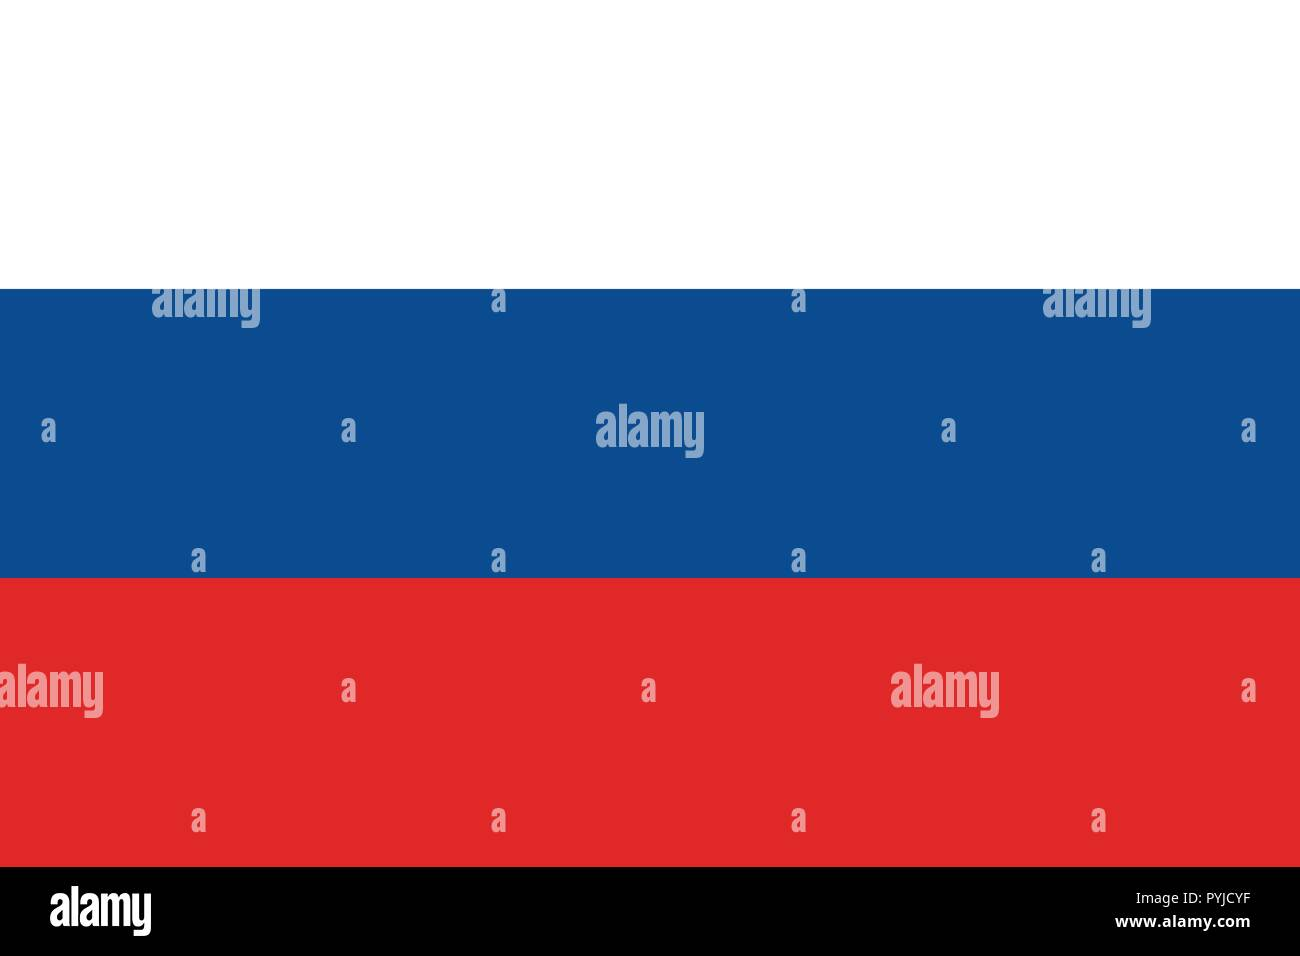 Vector image for Russia flag. Based on the official and exact Russian flag dimensions (3:2) & colors (White, 293C, and 485C) Stock Vector